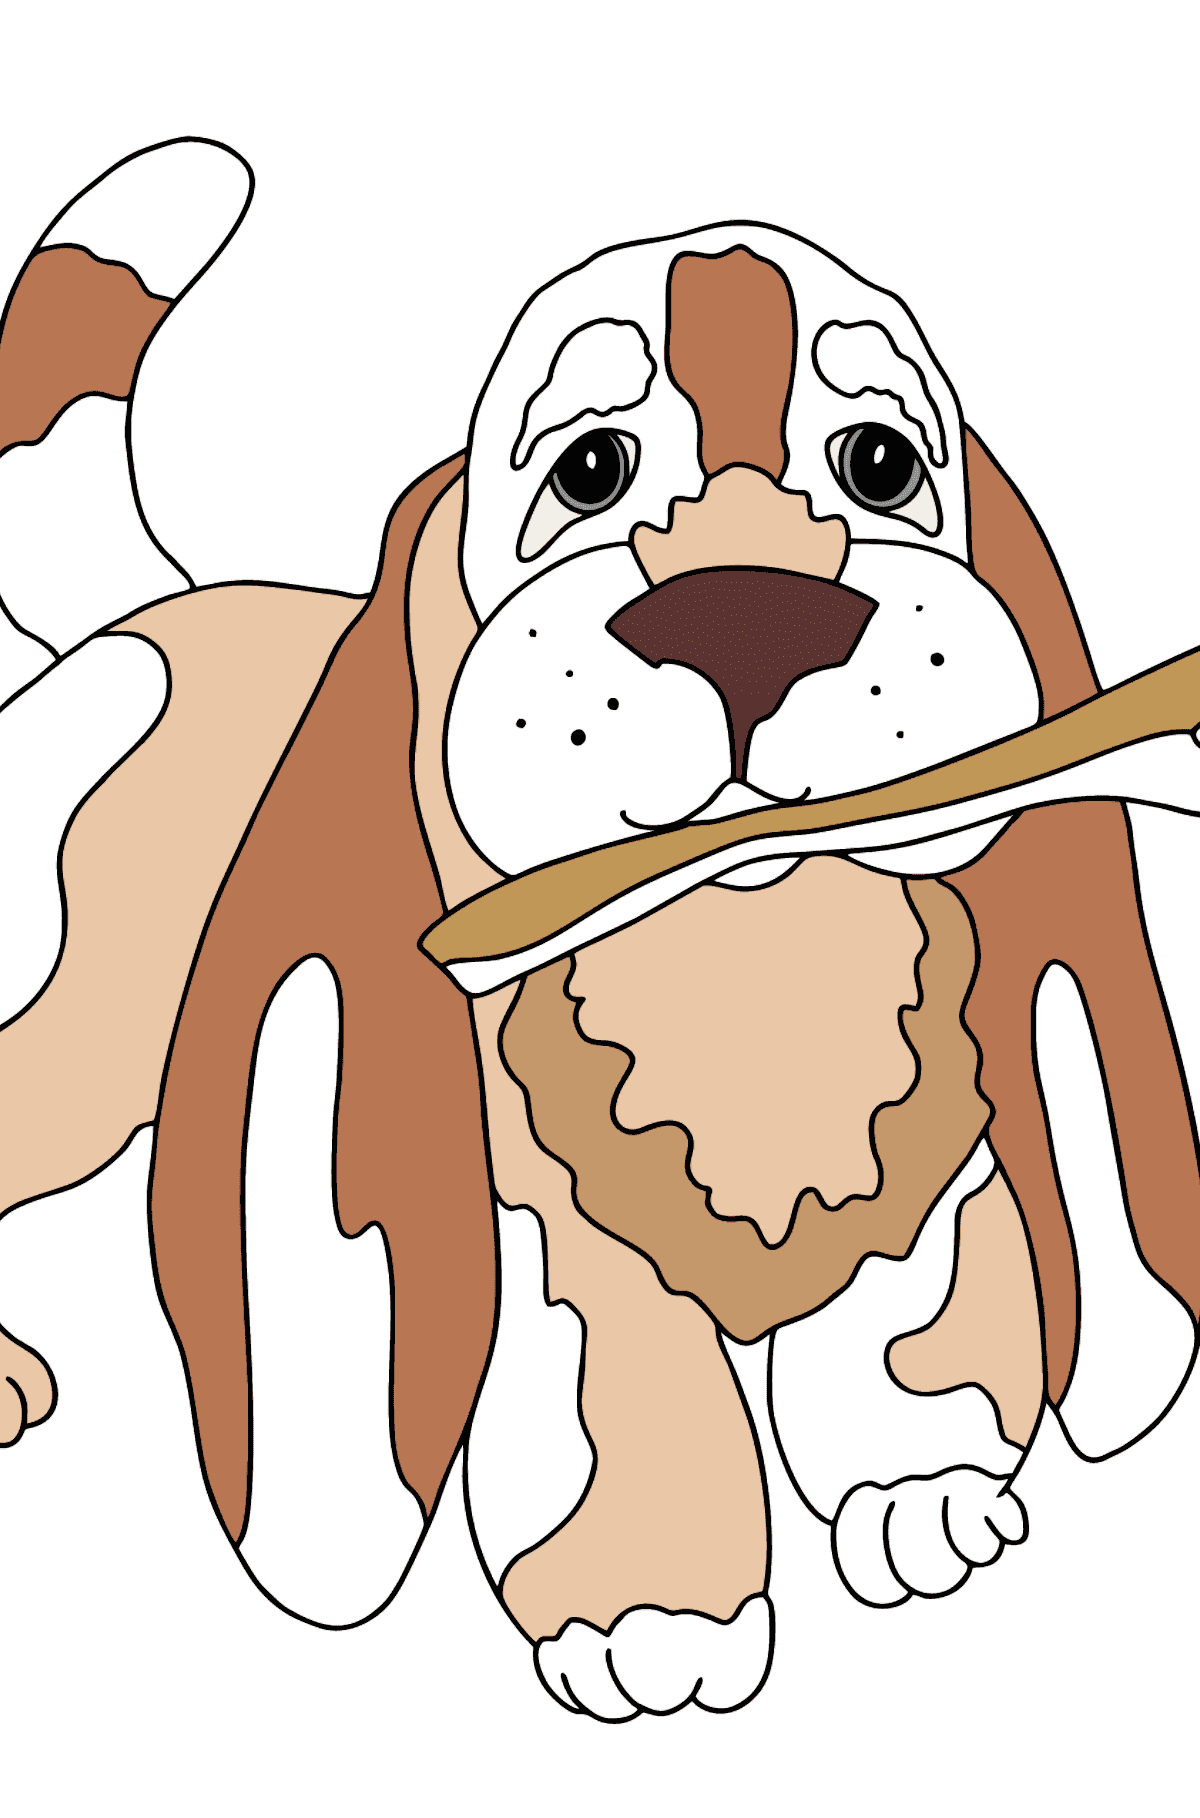 Coloring Page - A Dog is Playing with a Stick - Coloring Pages for Kids